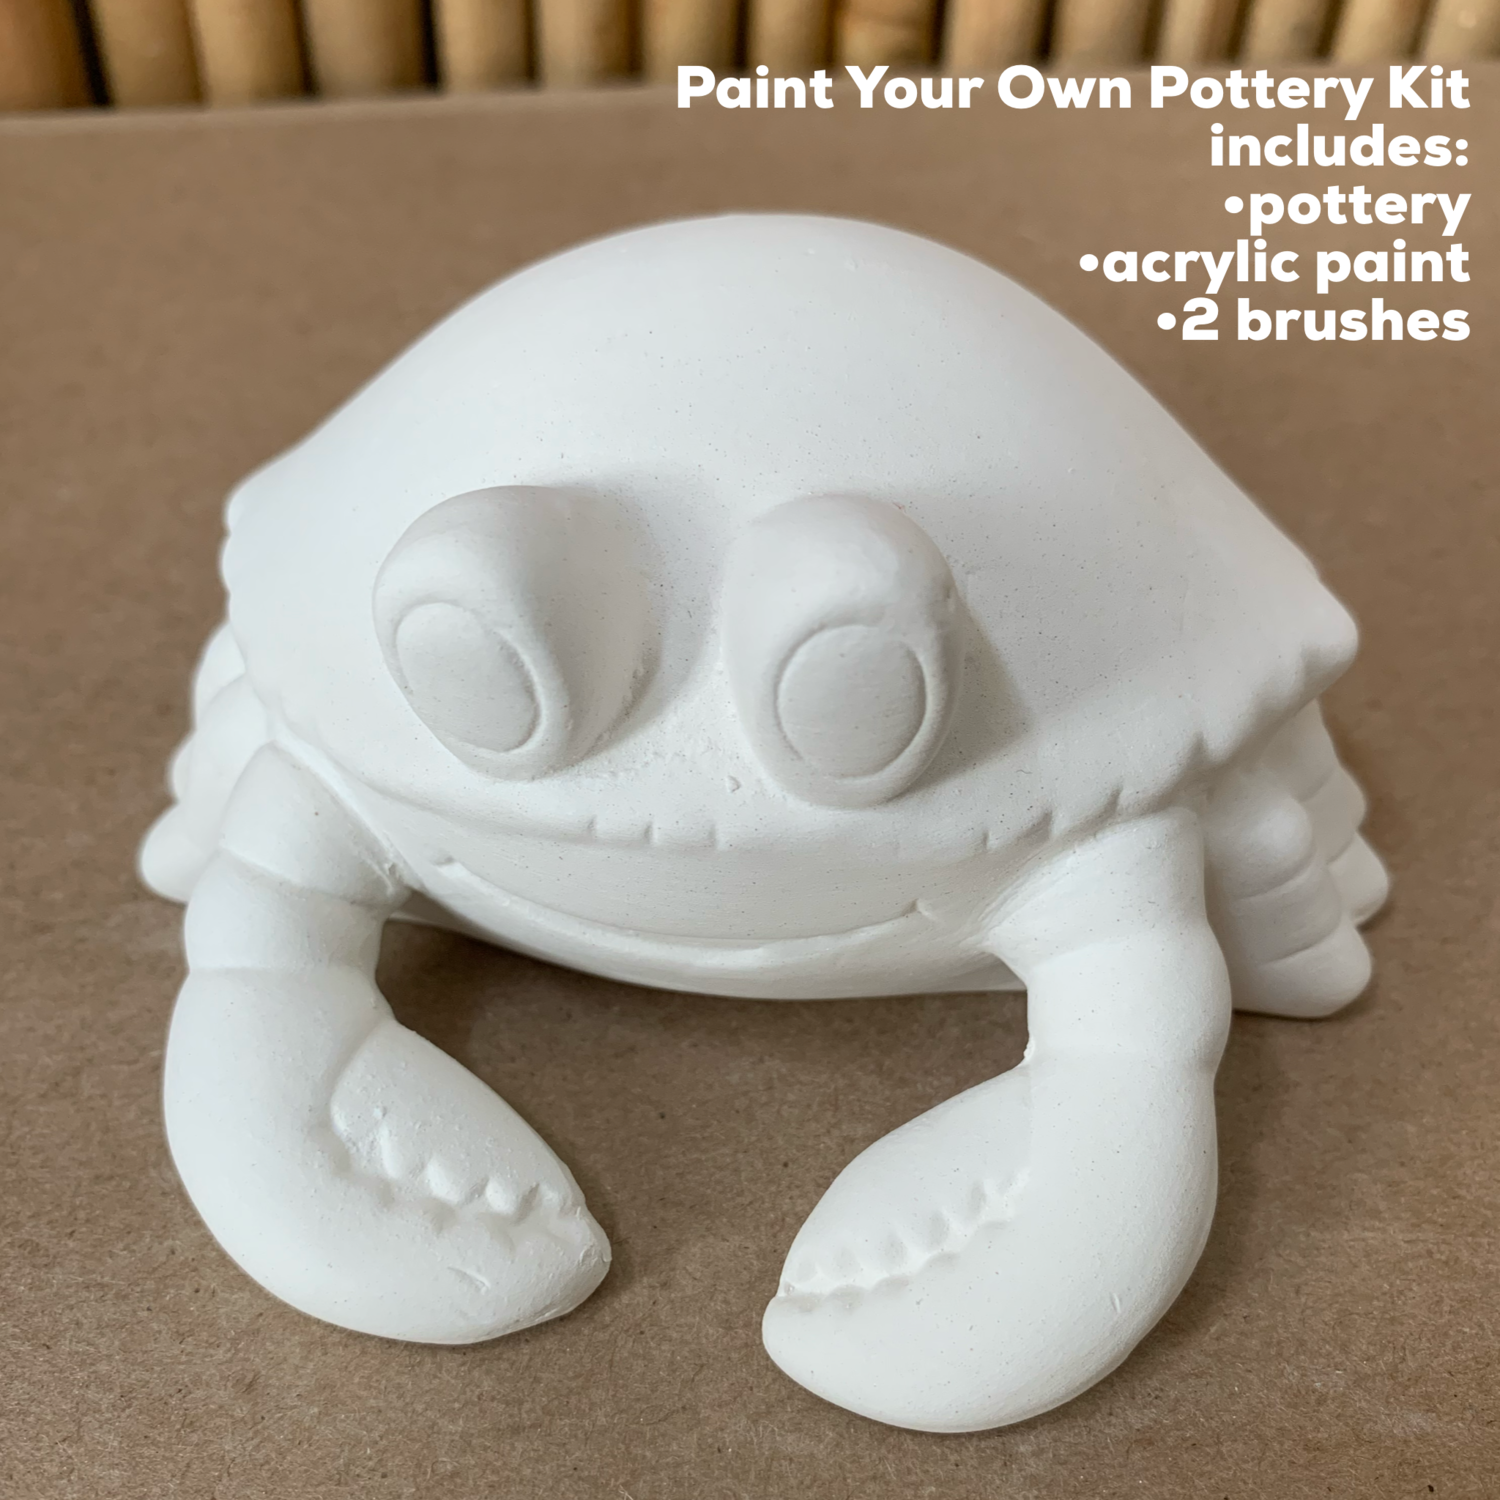 NO FIRE Paint Your Own Pottery Kit -  Ceramic Crab Acrylic Painting Kit